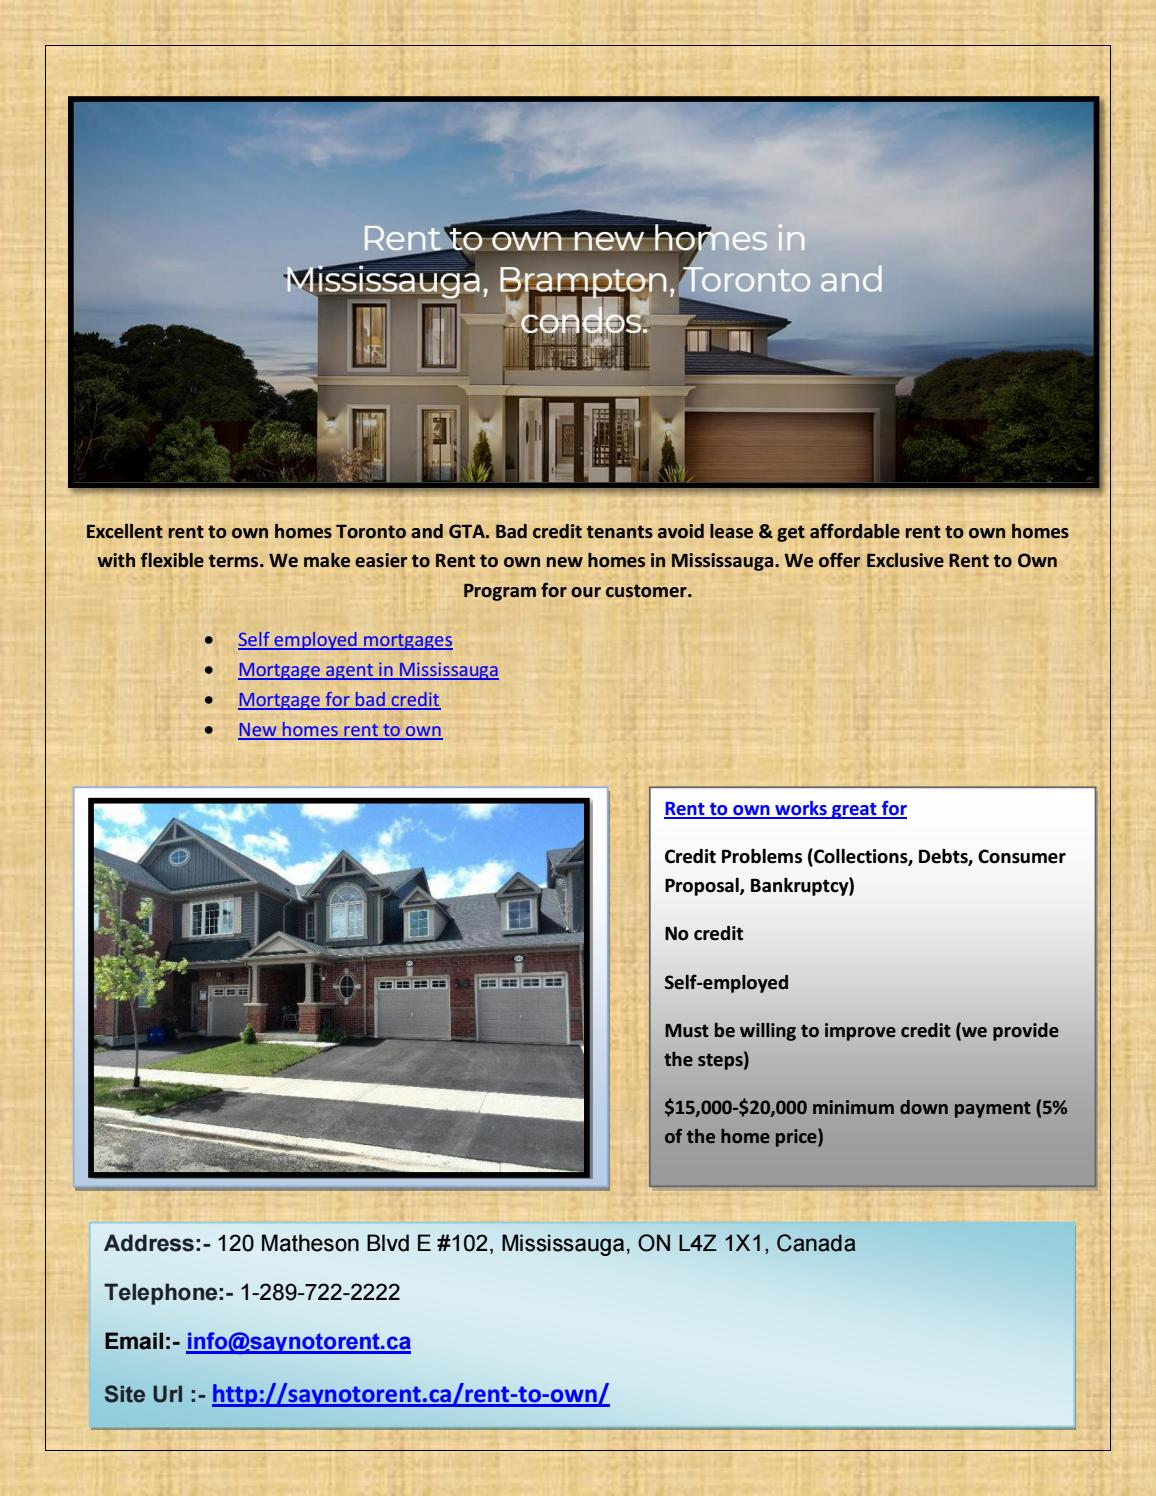 New homes rent to own by kerry lmasa - issuu